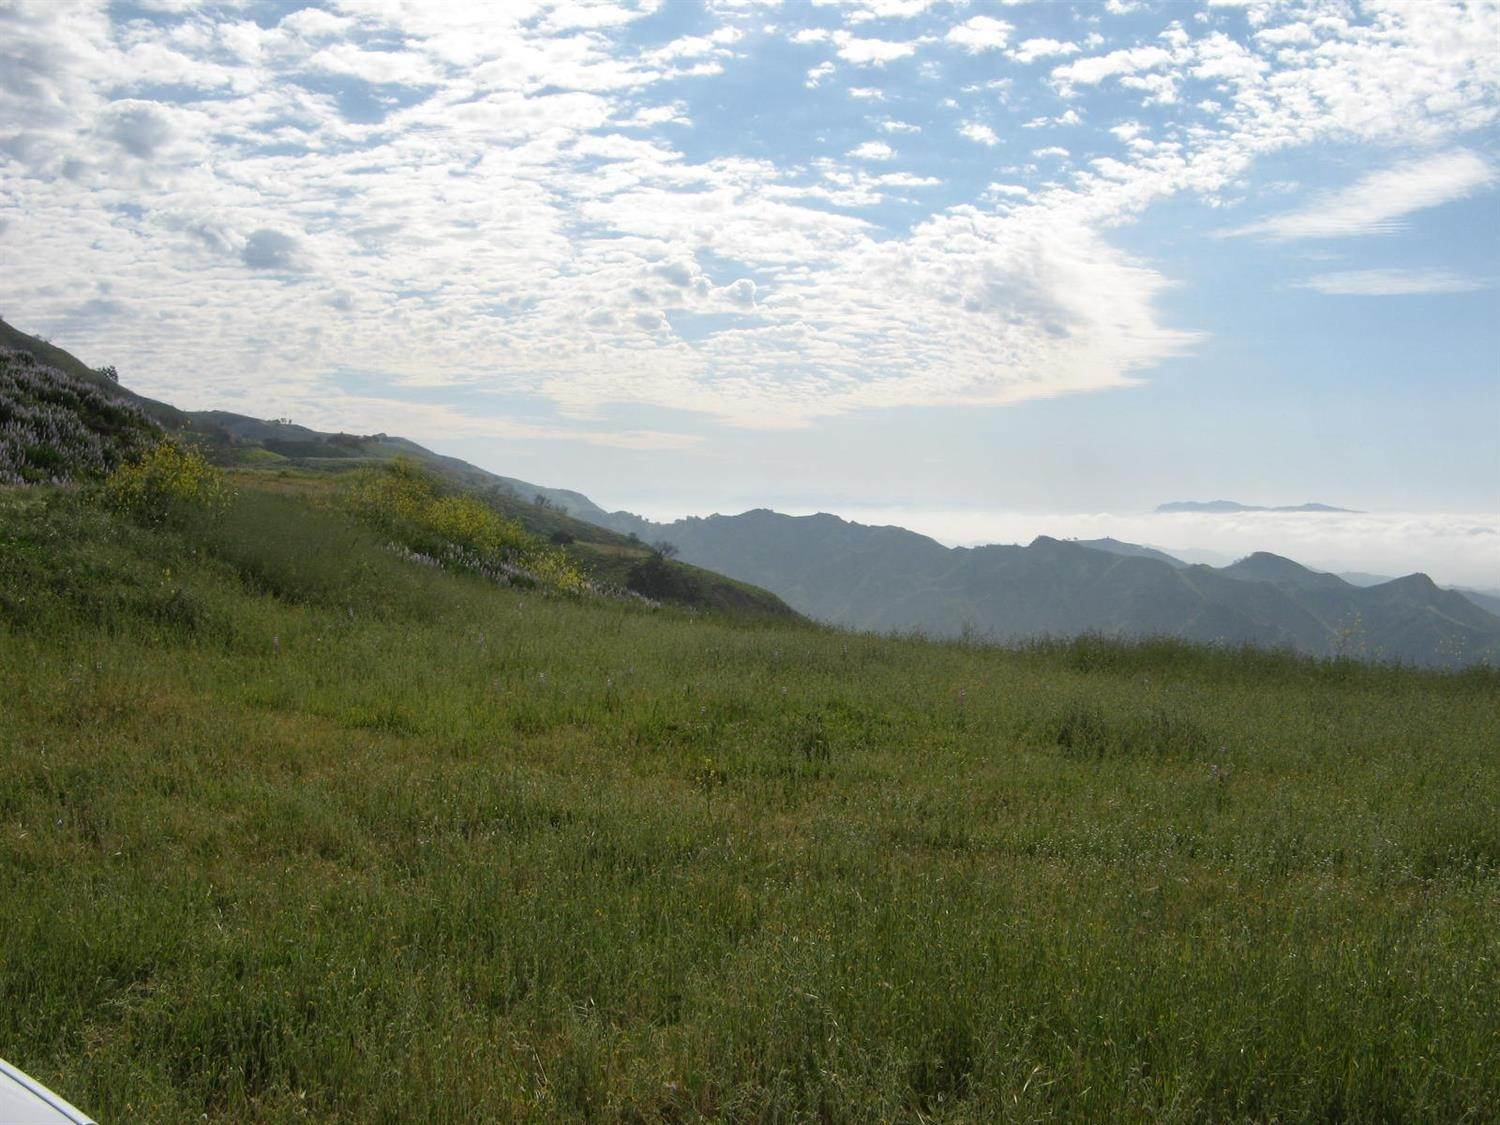 Lots / Acreage for Sale at Sulphur Mountain Road Ojai, California 93023 United States